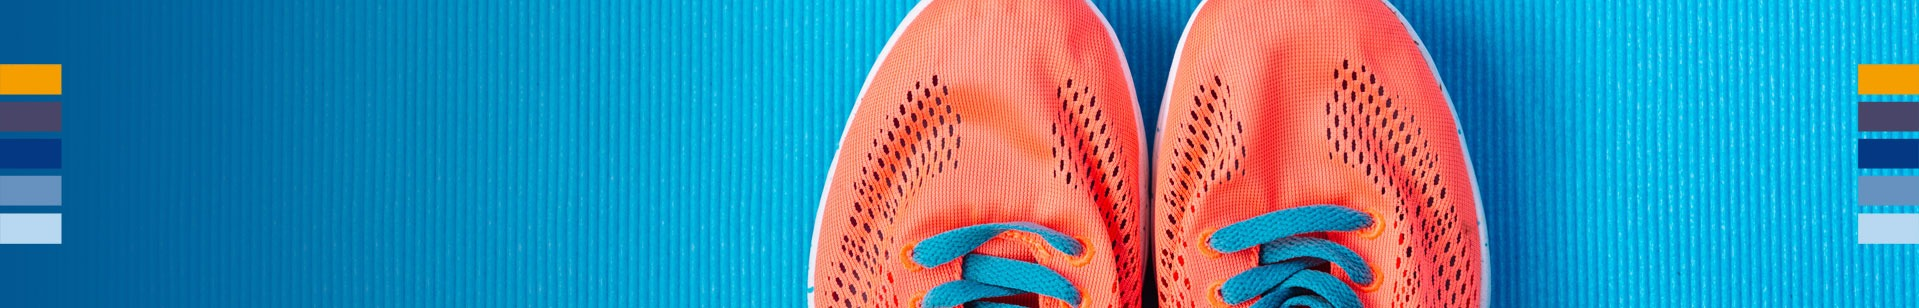 index-HR-Marketing-Header-Laufschuhe